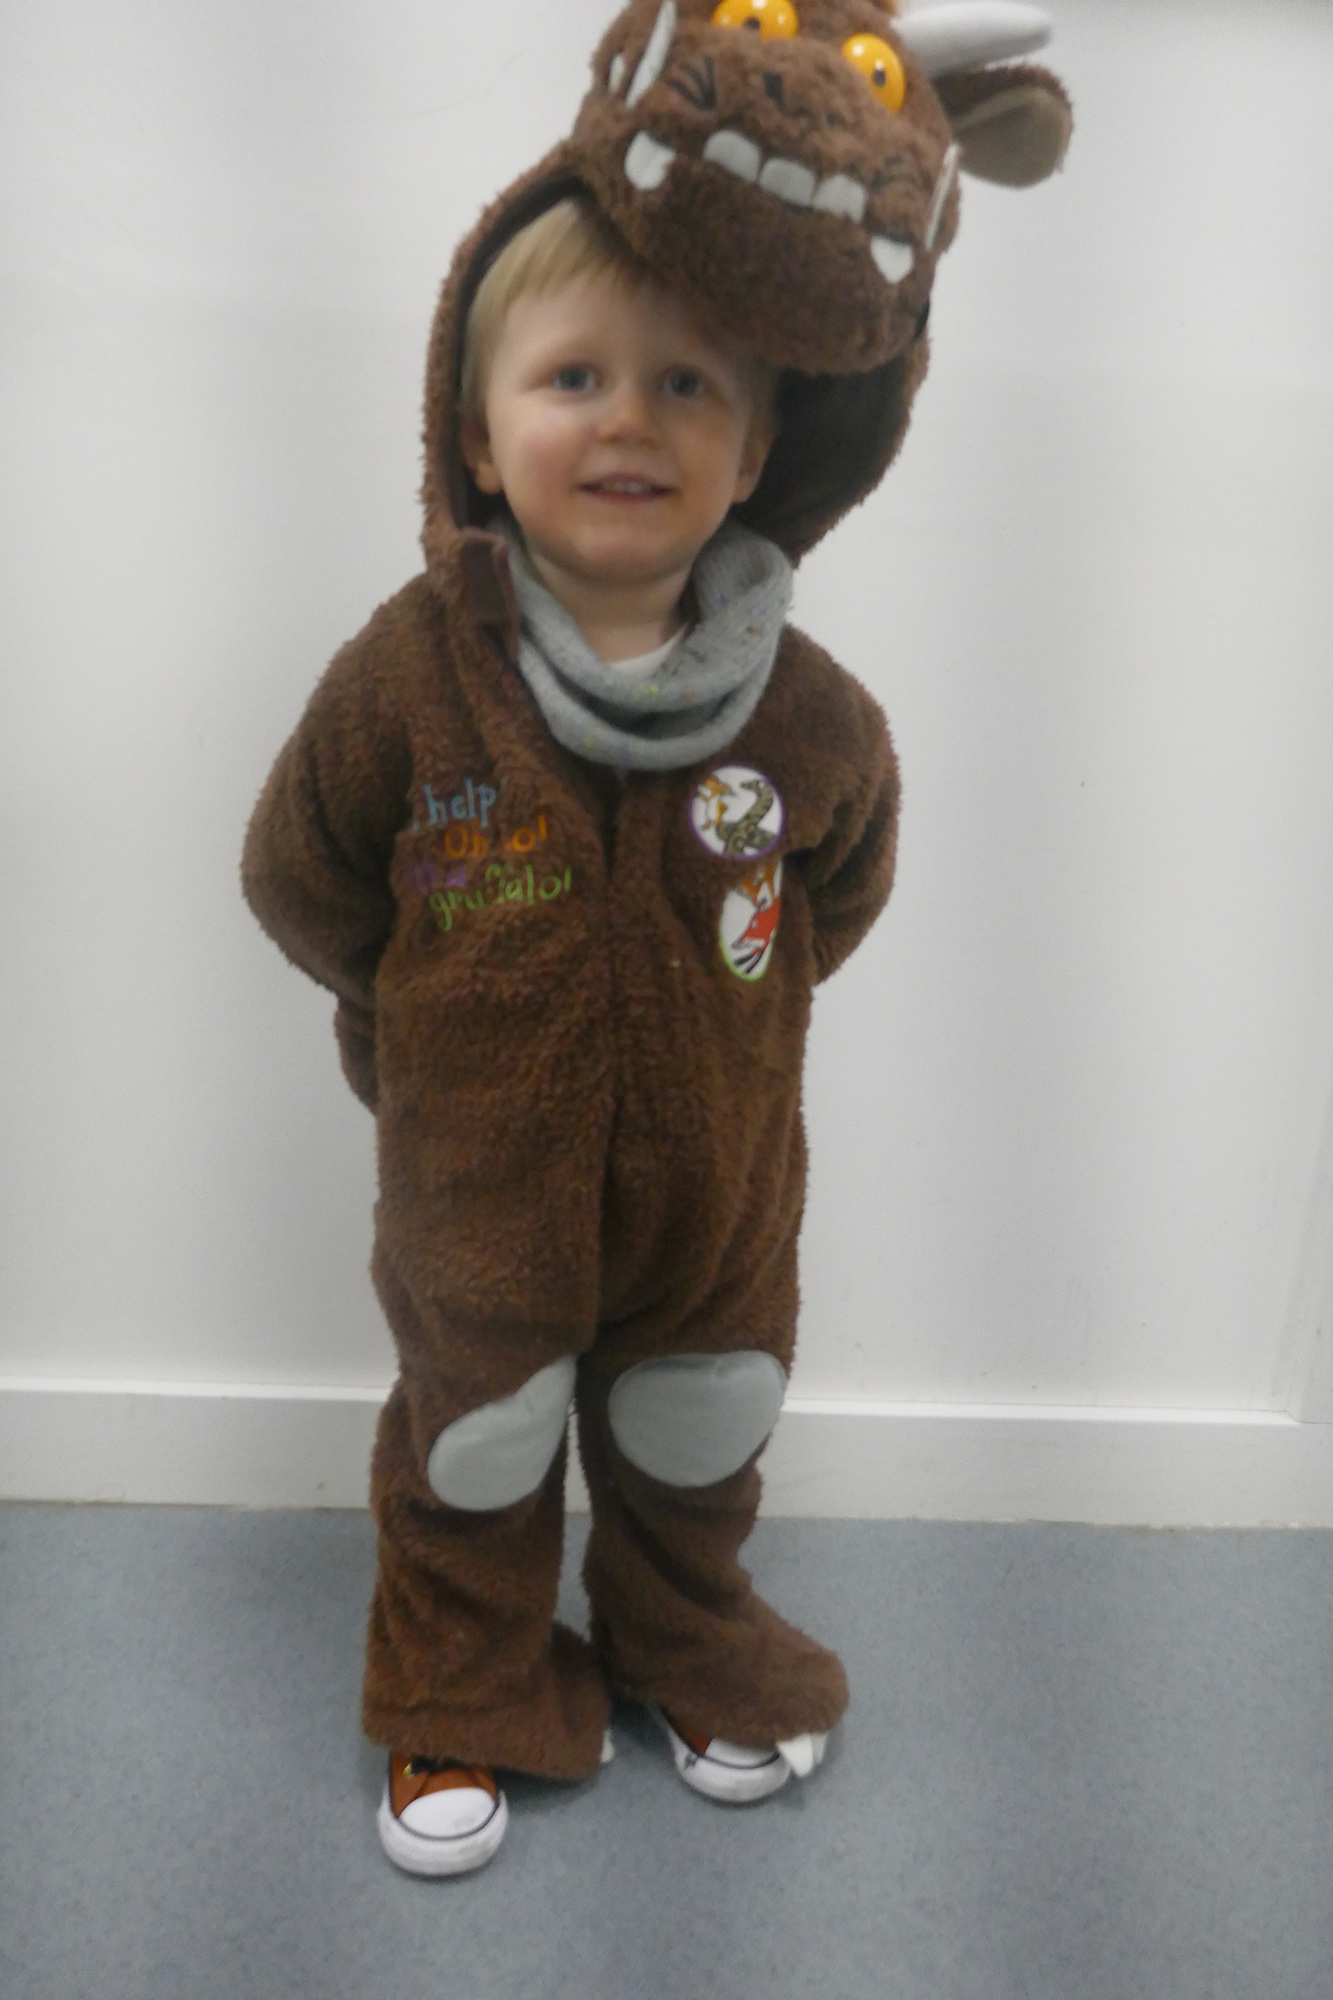 Child dressed as the Guffalo